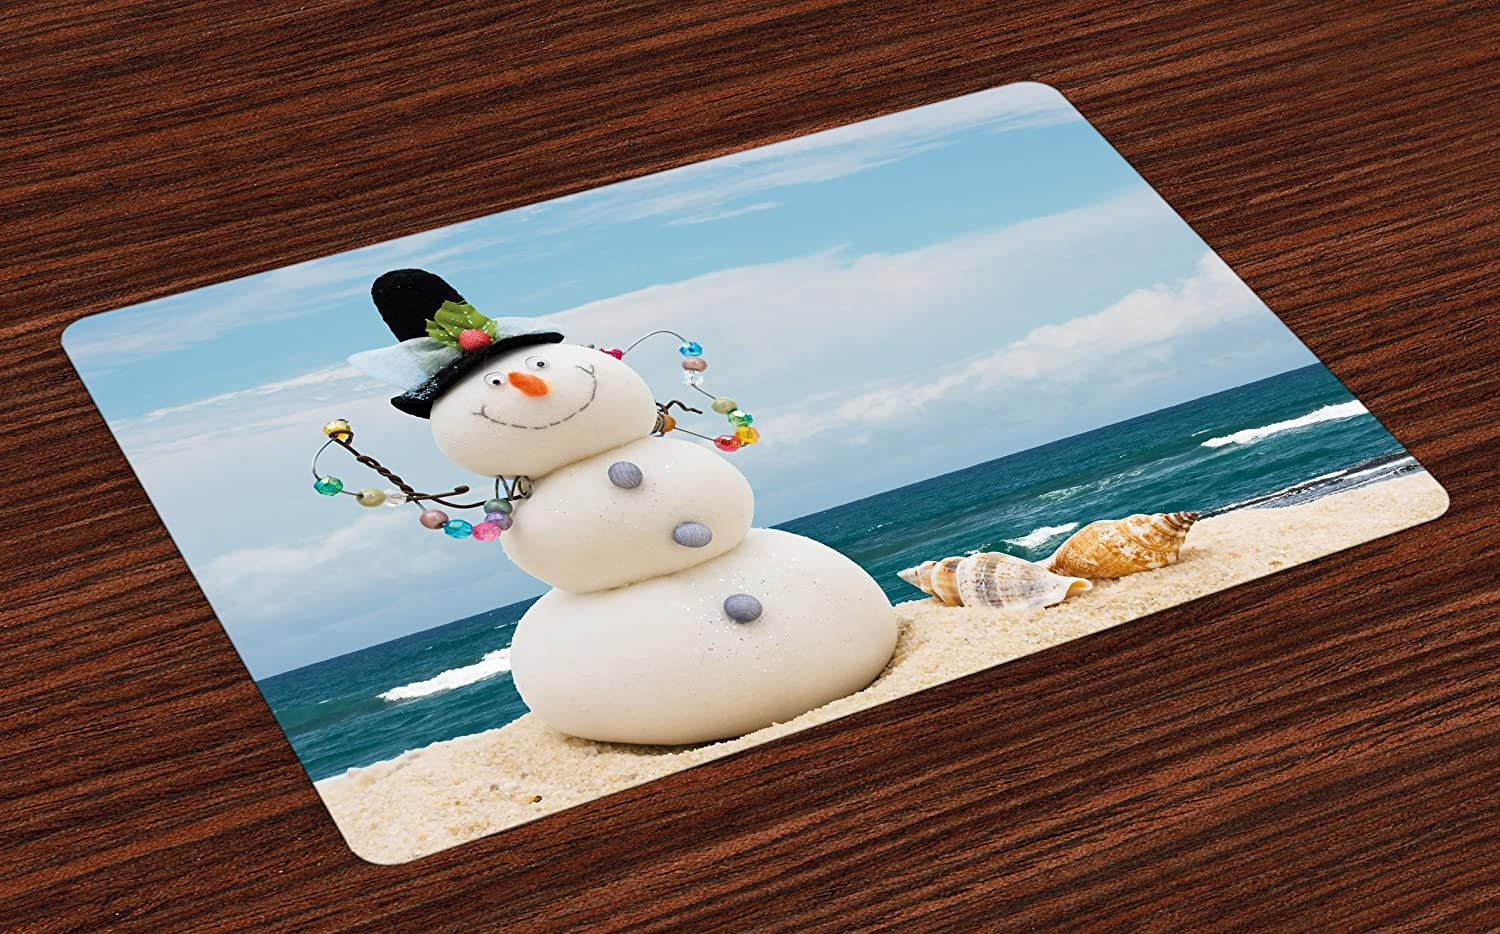 Ambesonne Snowman Place Mats Set of 4, Winter Vacation Holiday Theme Snowman with Seashells Sitting on Sandy Beach Coastal, Washable Fabric Placemats for Dining Room Kitchen Table Decor, Multicolor